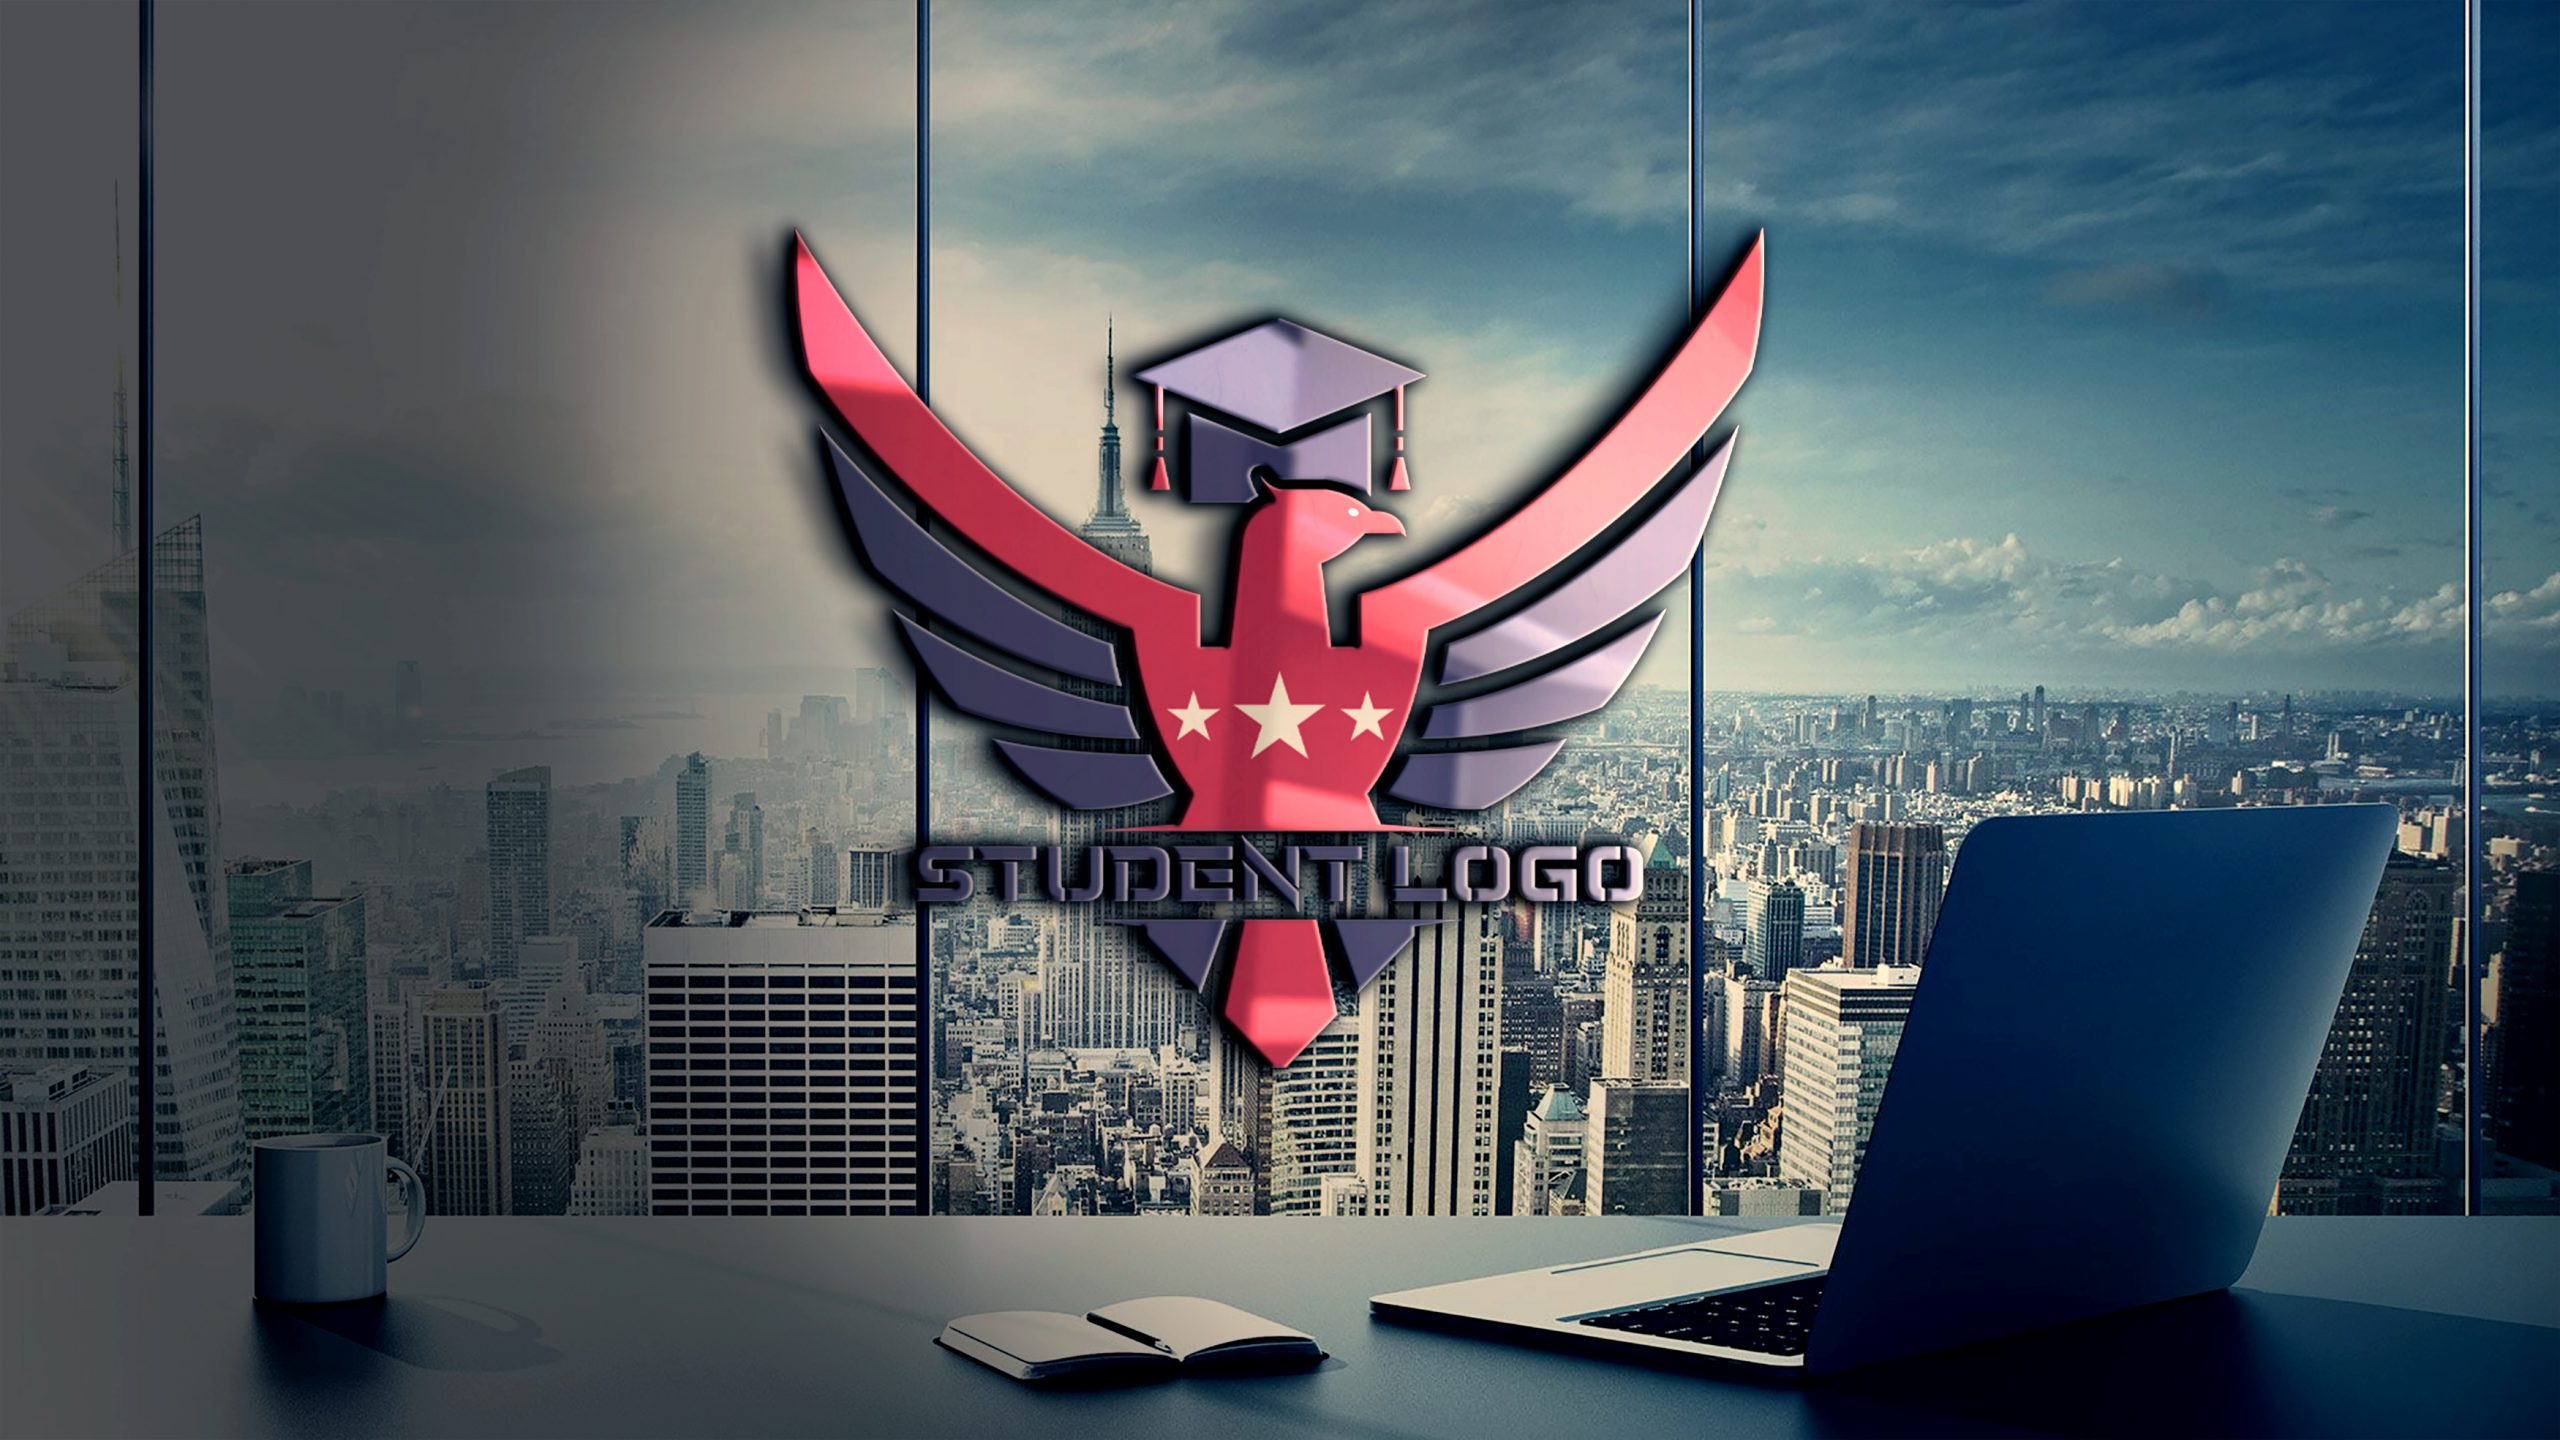 Student Logo on transparent wall